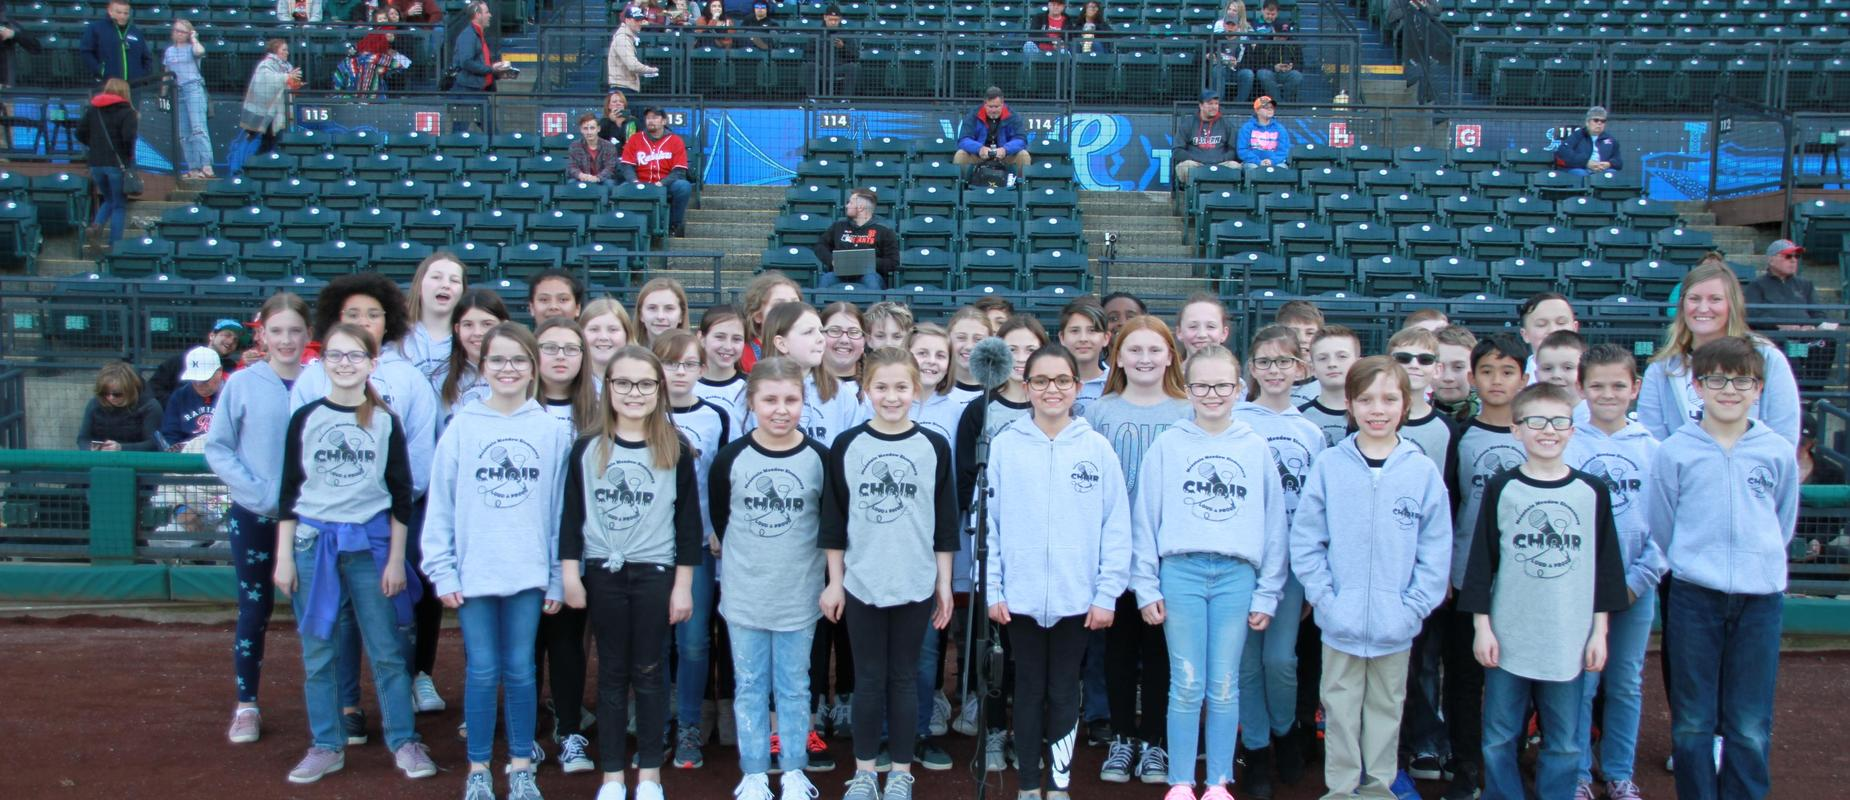 Mountain Meadow Choir singing National Anthem at T Mobile Park